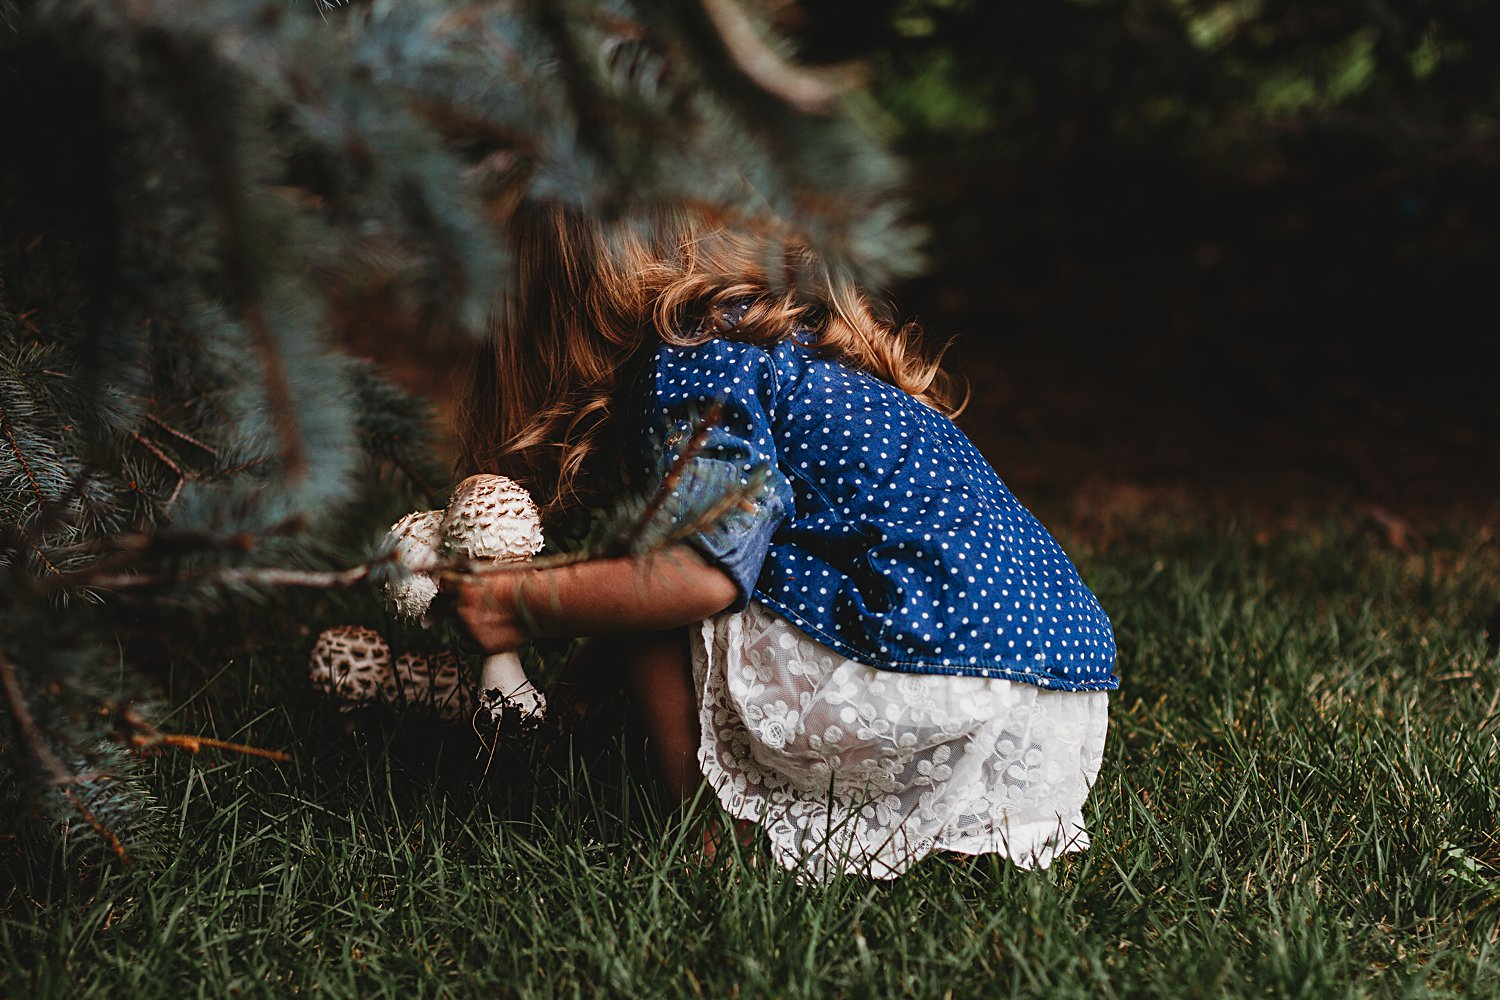 Young girl picking mushrooms under a tree